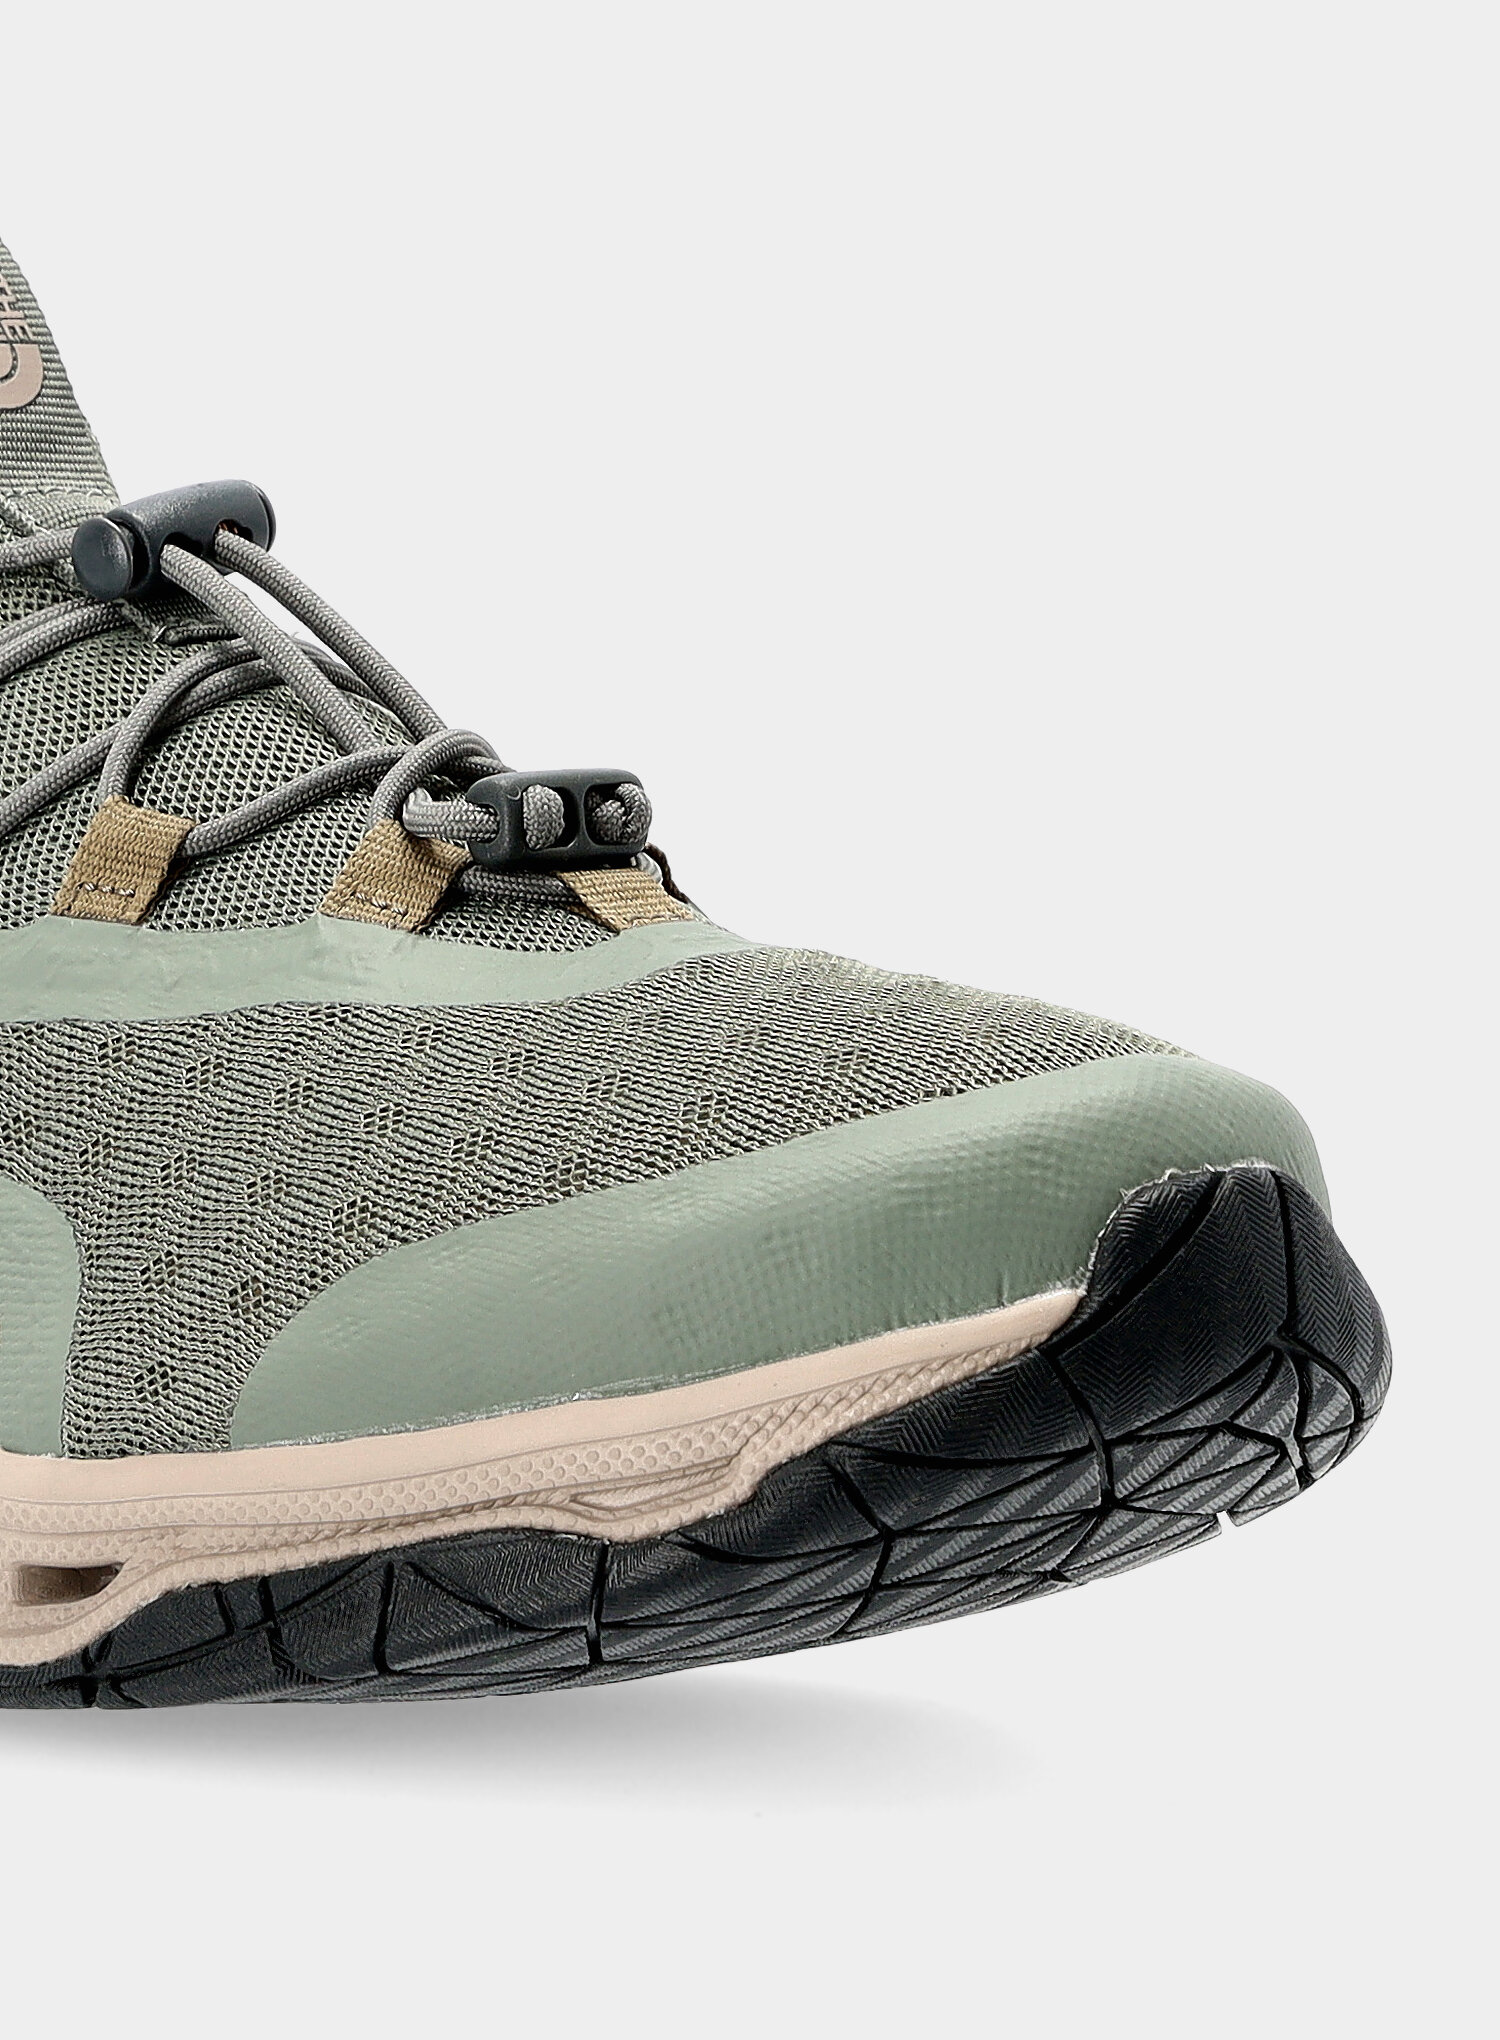 Buty do wody The North Face Skagit Water Shoe - agave green - zdjęcie nr. 9